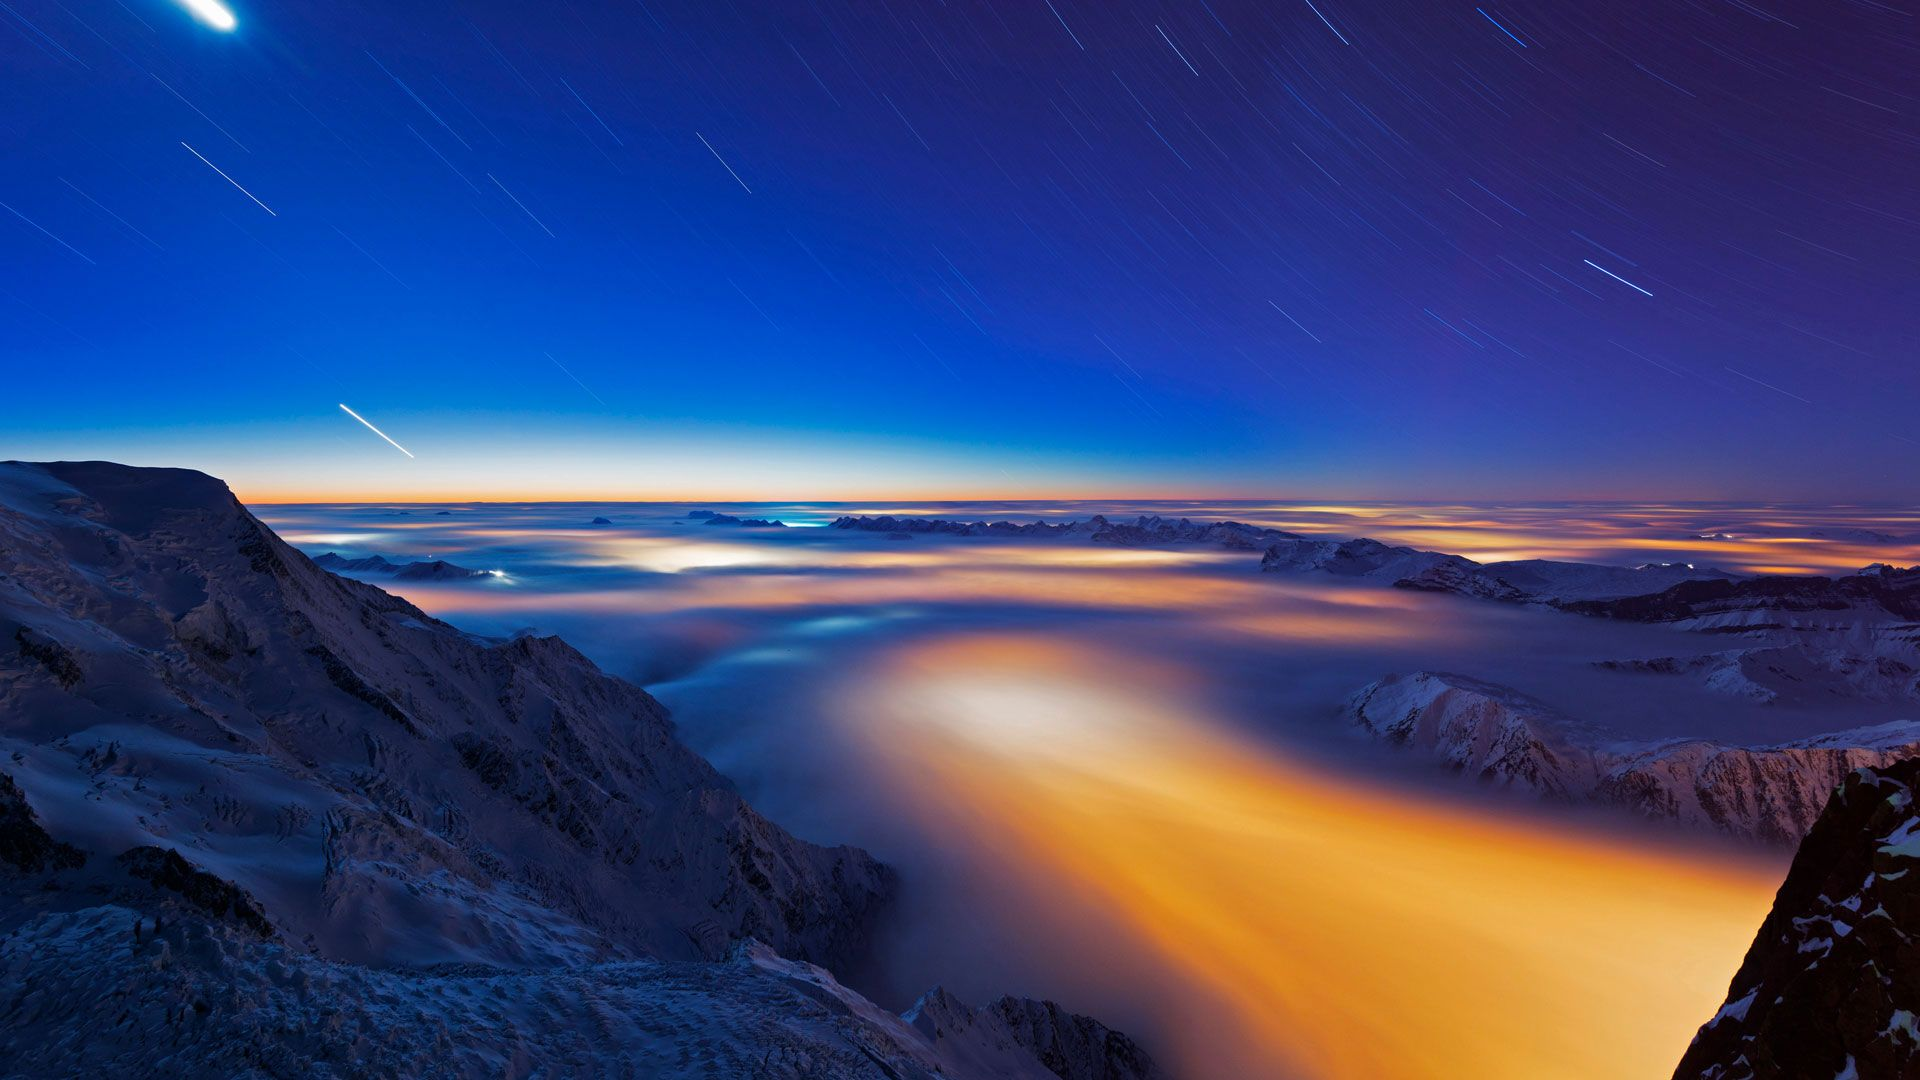 Sea of clouds over Chamonix Valley, France (© Masterfile